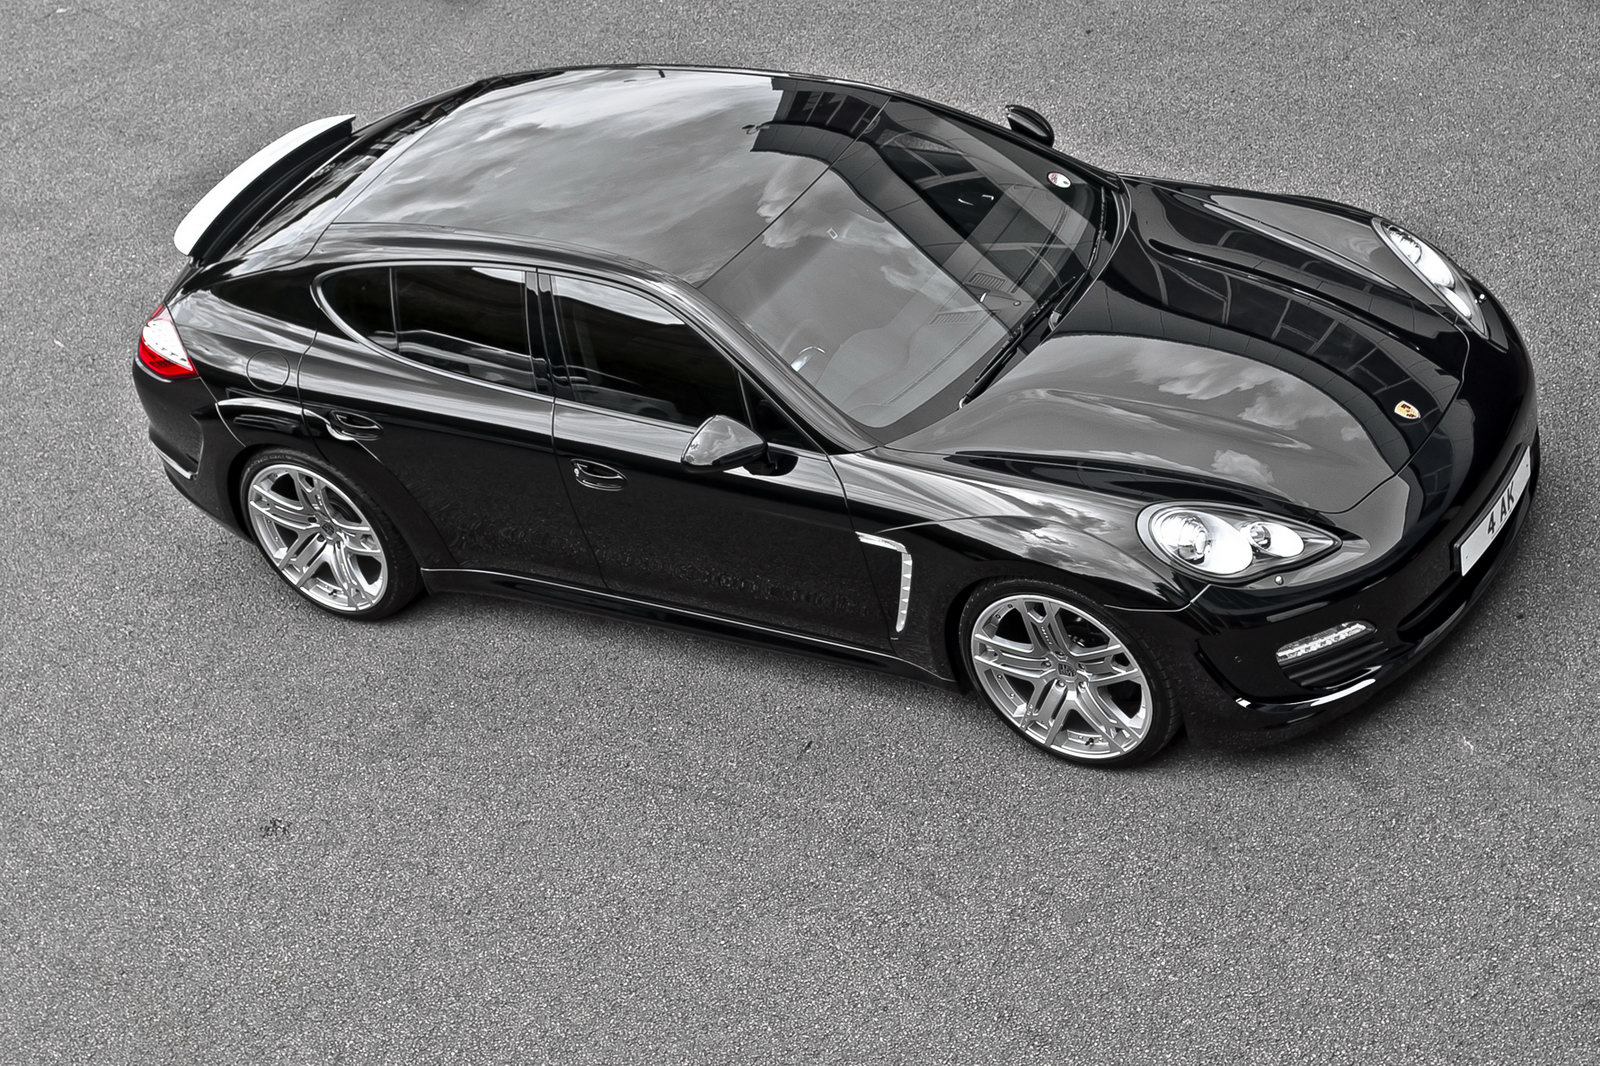 Project Kahn Porsche Panamera Kahn's new car project: The Porsche Panamera Car Saloon